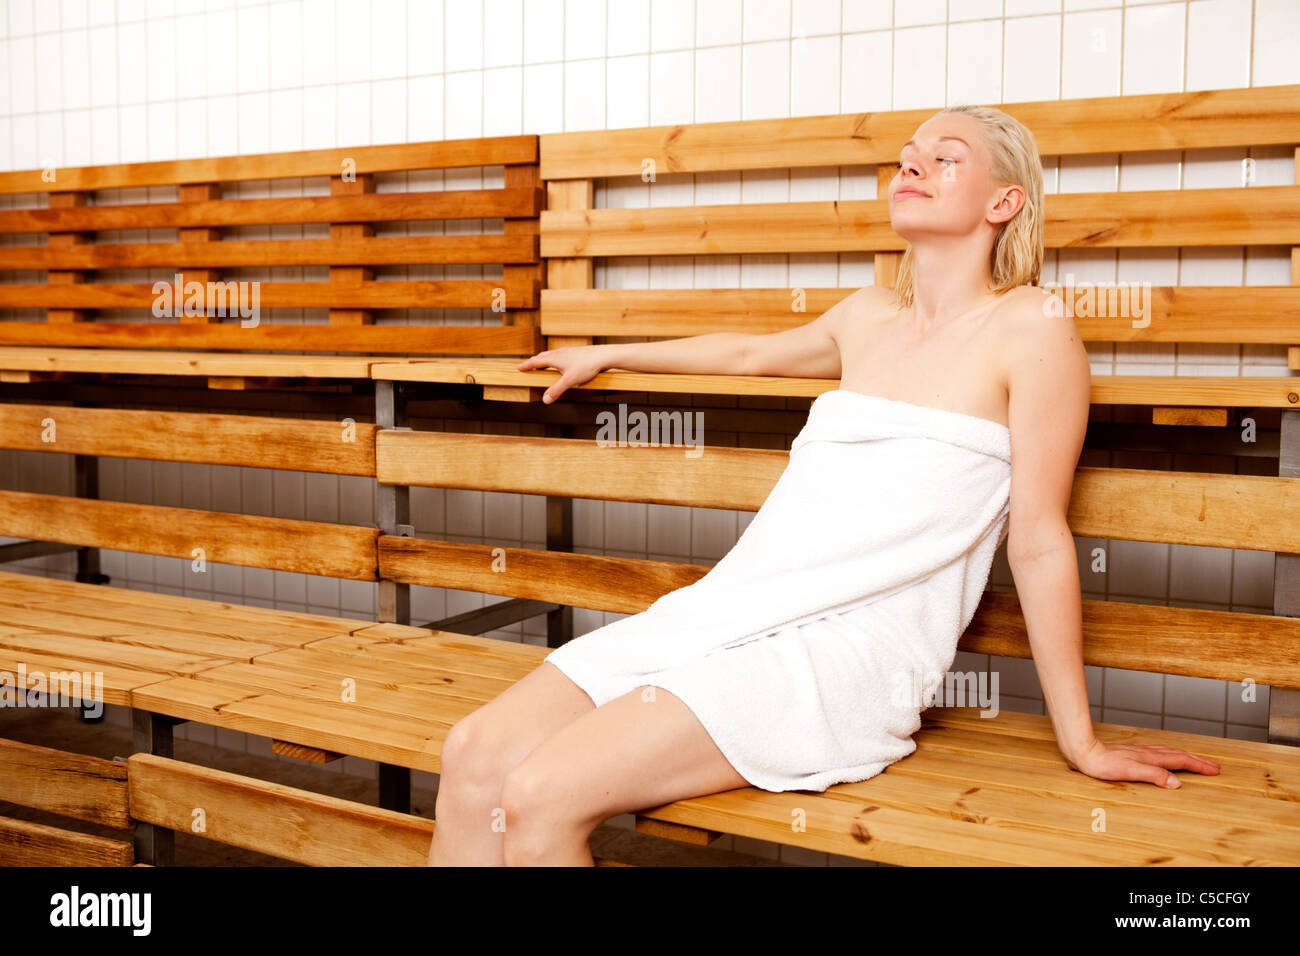 sauna stockfotos sauna bilder alamy. Black Bedroom Furniture Sets. Home Design Ideas